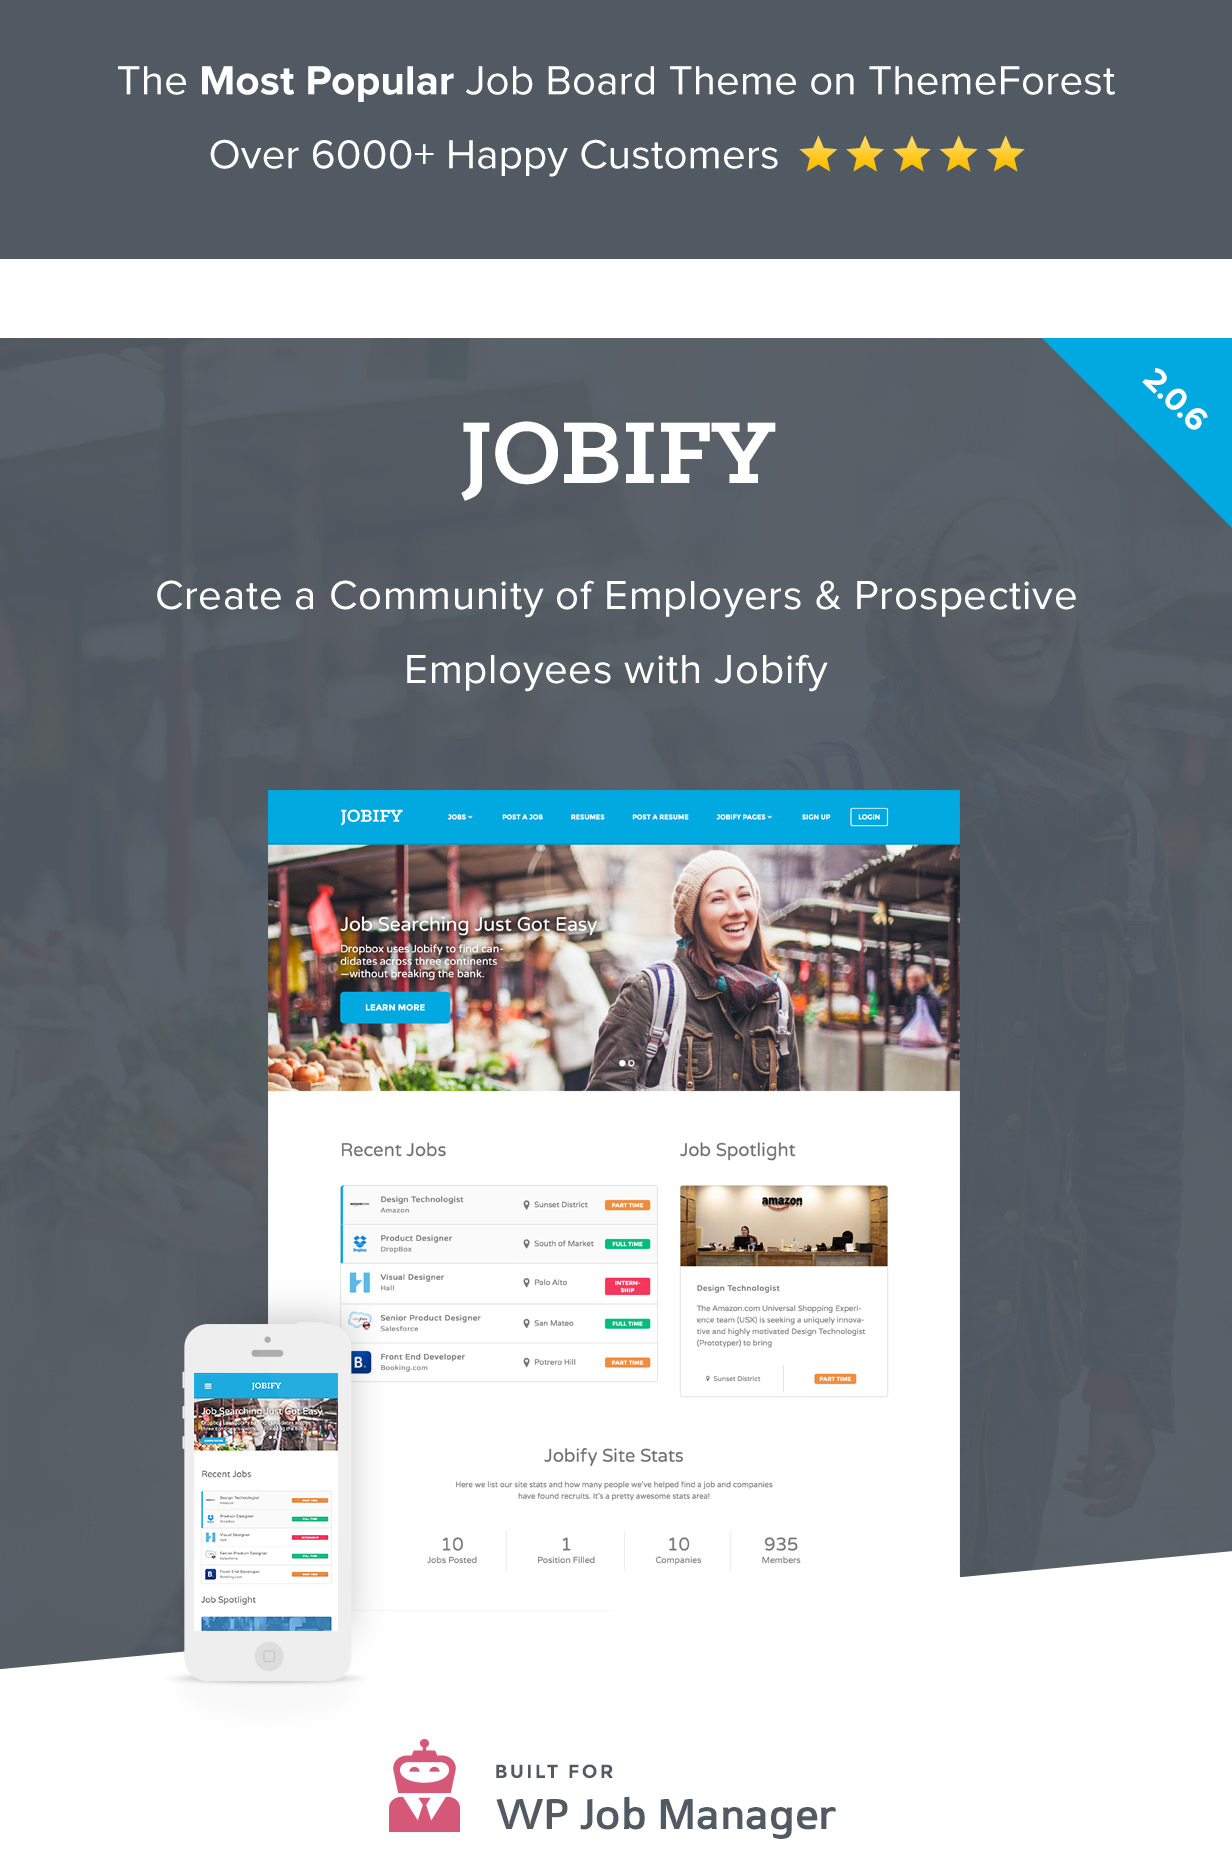 4 best job board themes plugins for wordpress site jobify job portal theme